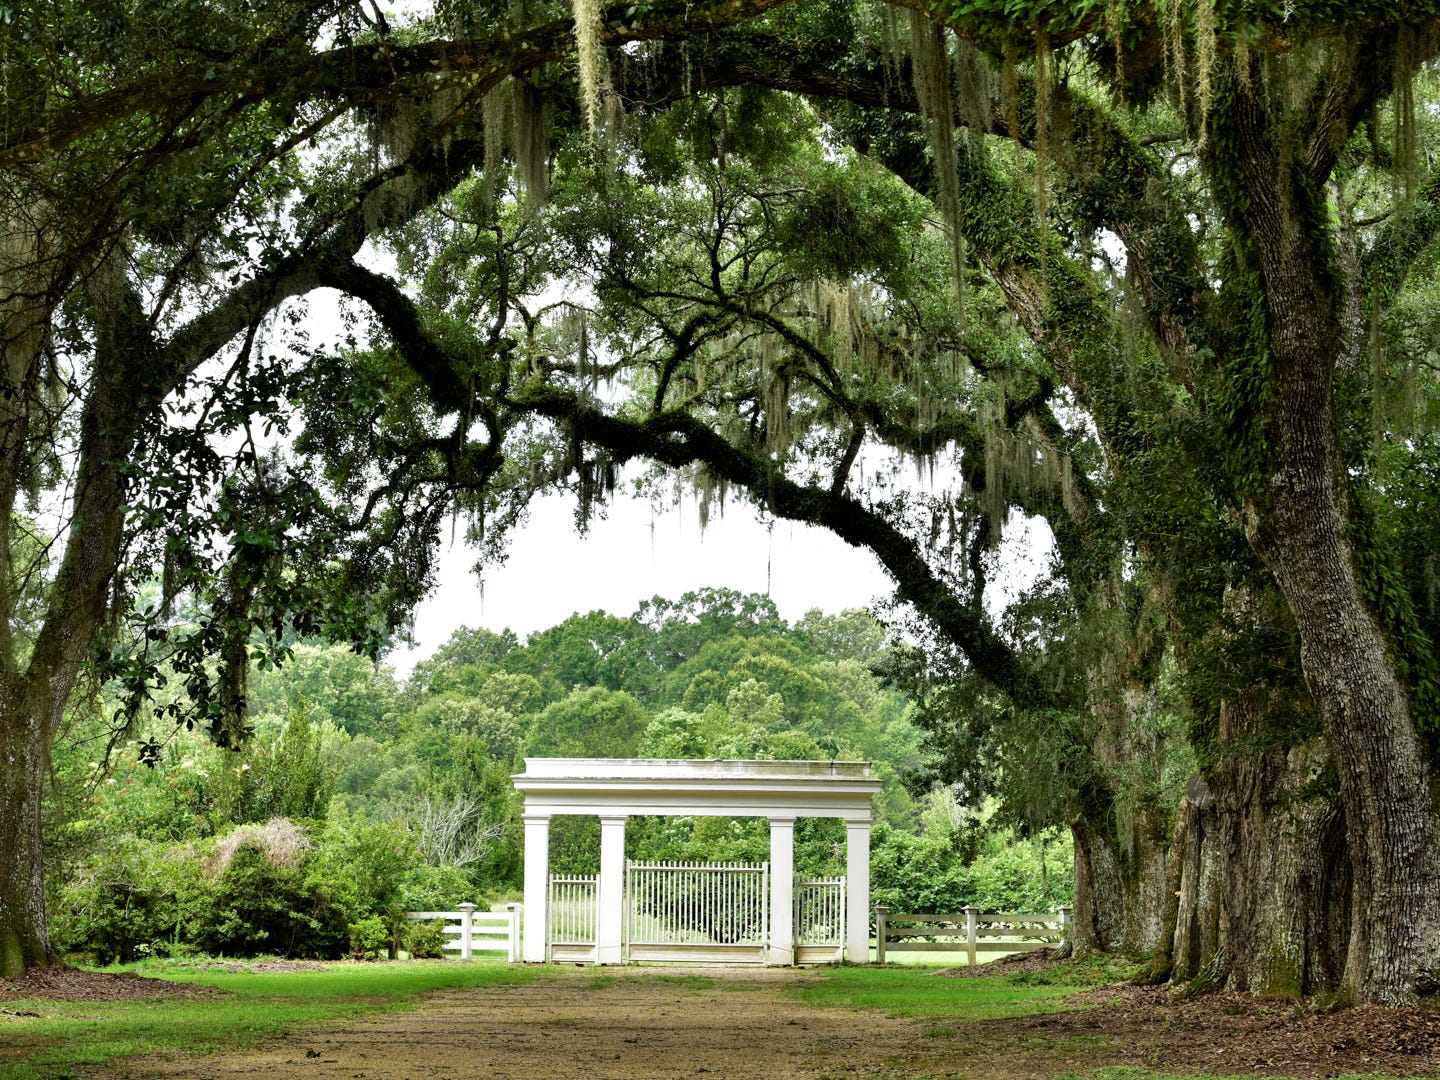 Louisiana: If relaxing on a porch among trees hung with Spanish moss is your idea of an ideal Southern escape, you're going to want to head to St. Francisville. The small town is so picturesque, it's been the backdrop for numerous TV shows and films. Spend your days browsing antique shops, visiting historic plantations or golfing at The Bluffs on Thompson Creek, the only Arnold Palmer-designed course in the state. Fans of ghosts and the supernatural can't miss a stop at The Myrtles Plantation, which is said to be haunted. St. Francisville is definitely one of America's most underrated travel spots. Evening Mystery Tour at The Myrtles Plantation: $15.